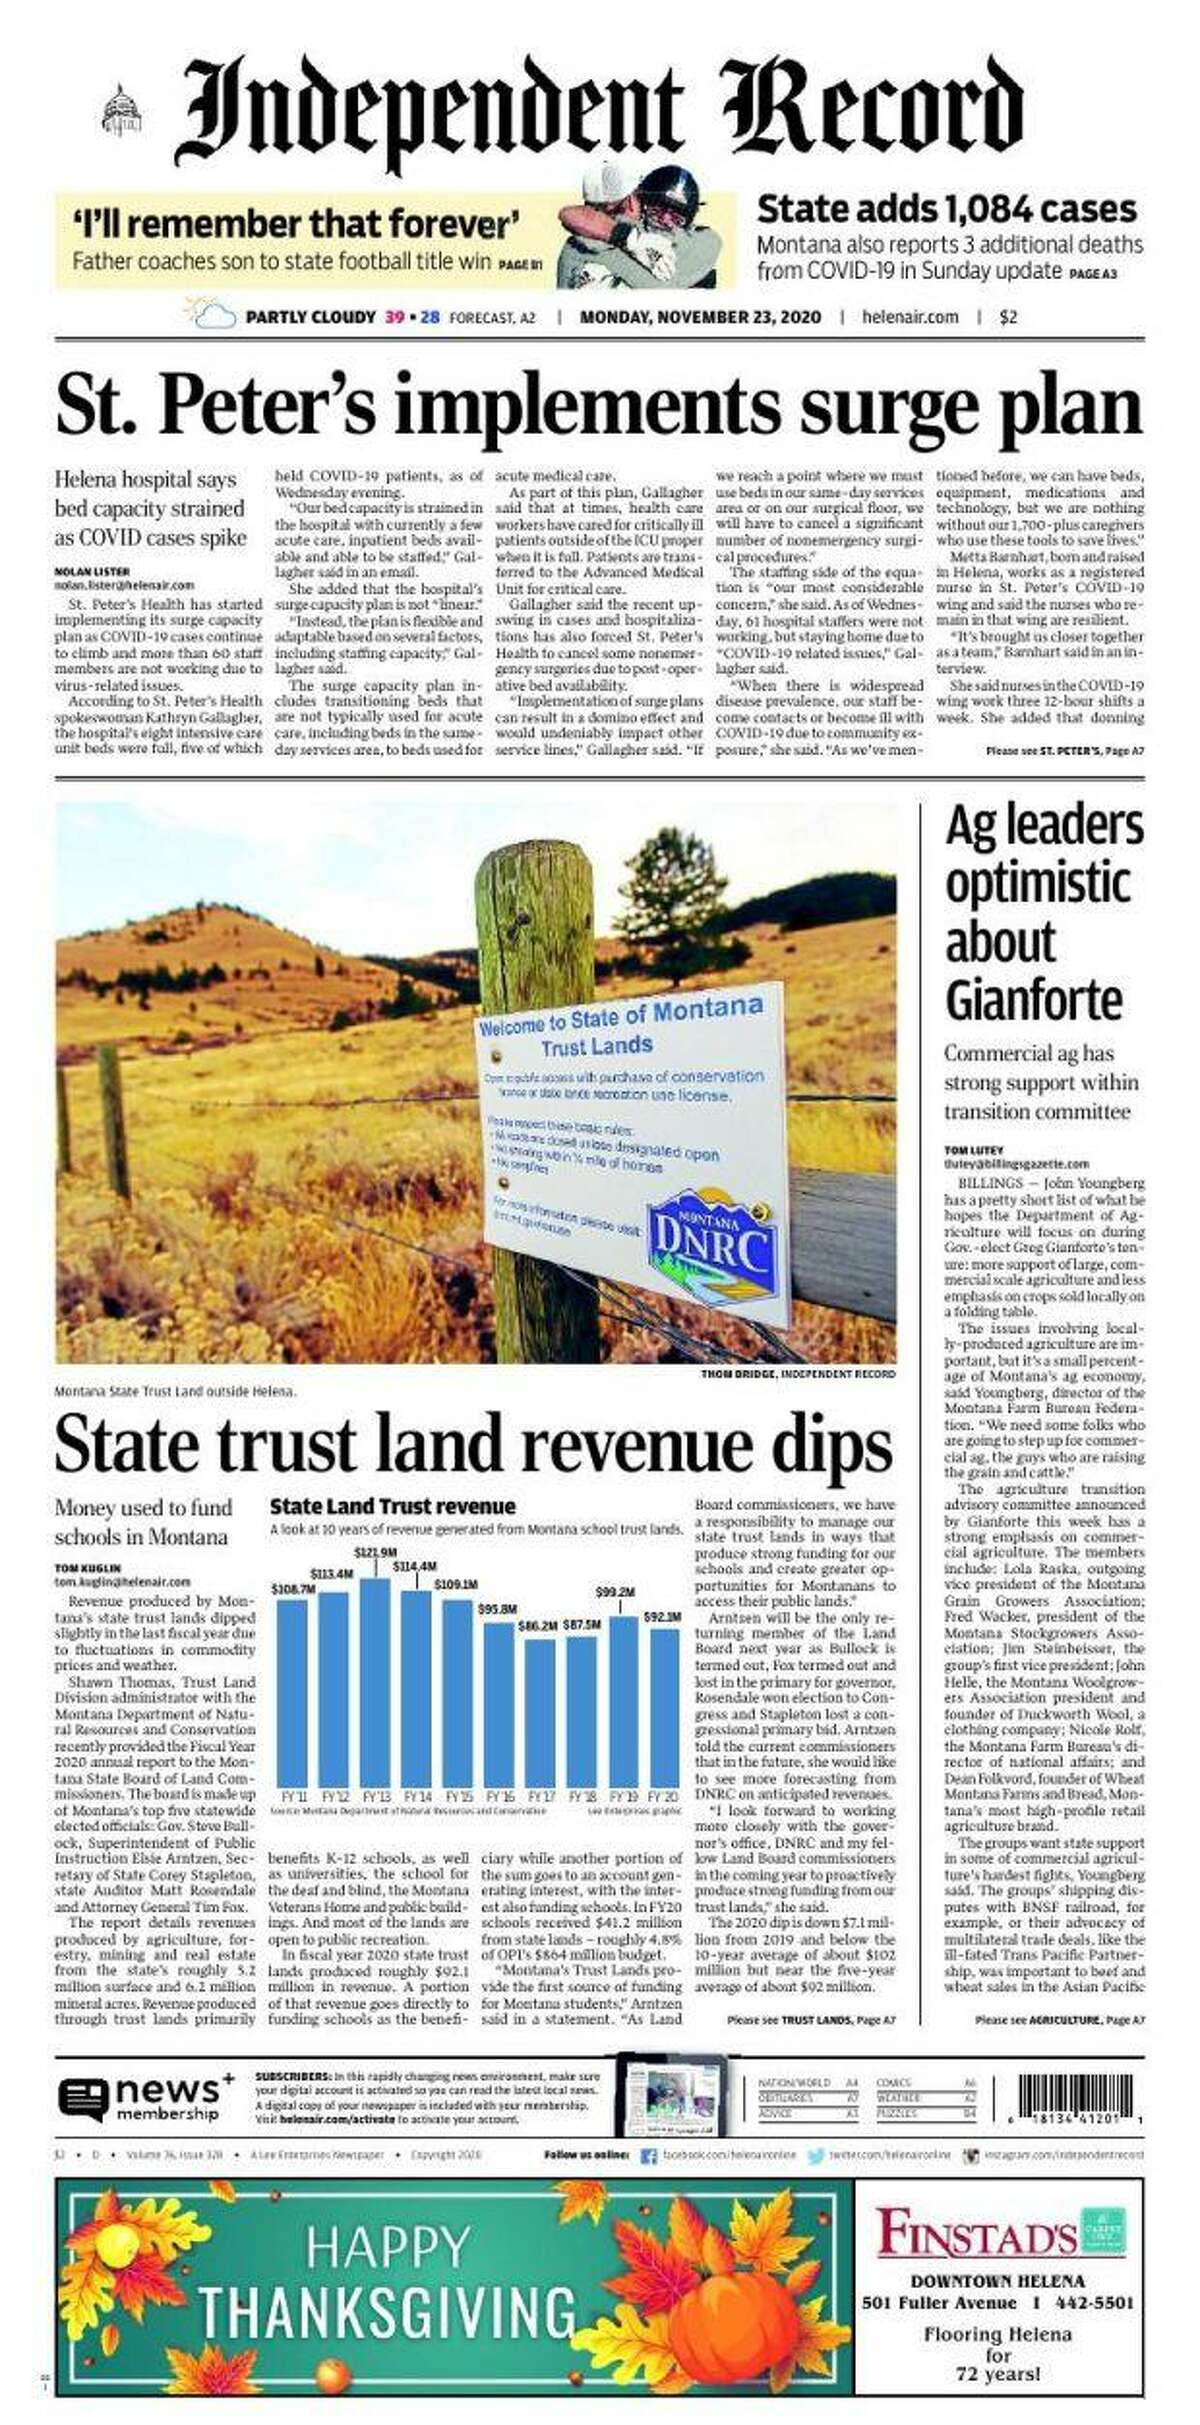 The front page of the Independent Record, a newspaper published in Helena, Mont., on Nov. 24, 2020.